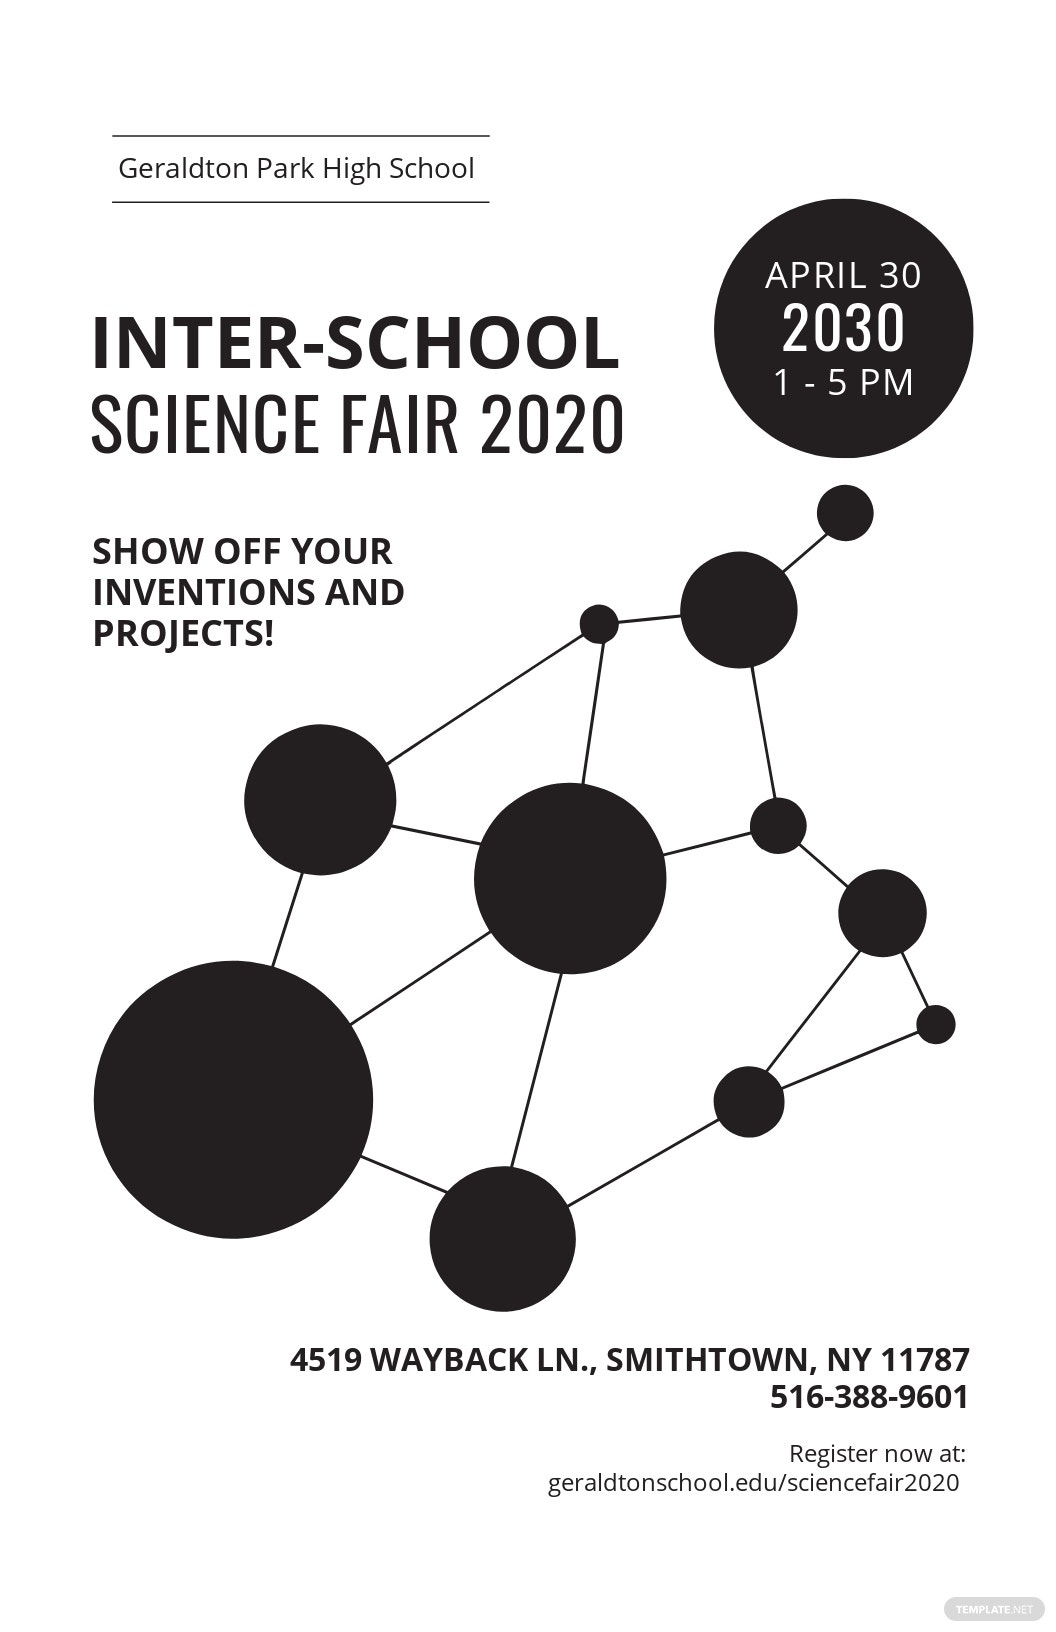 Free Science Fair Event Poster Template.jpe